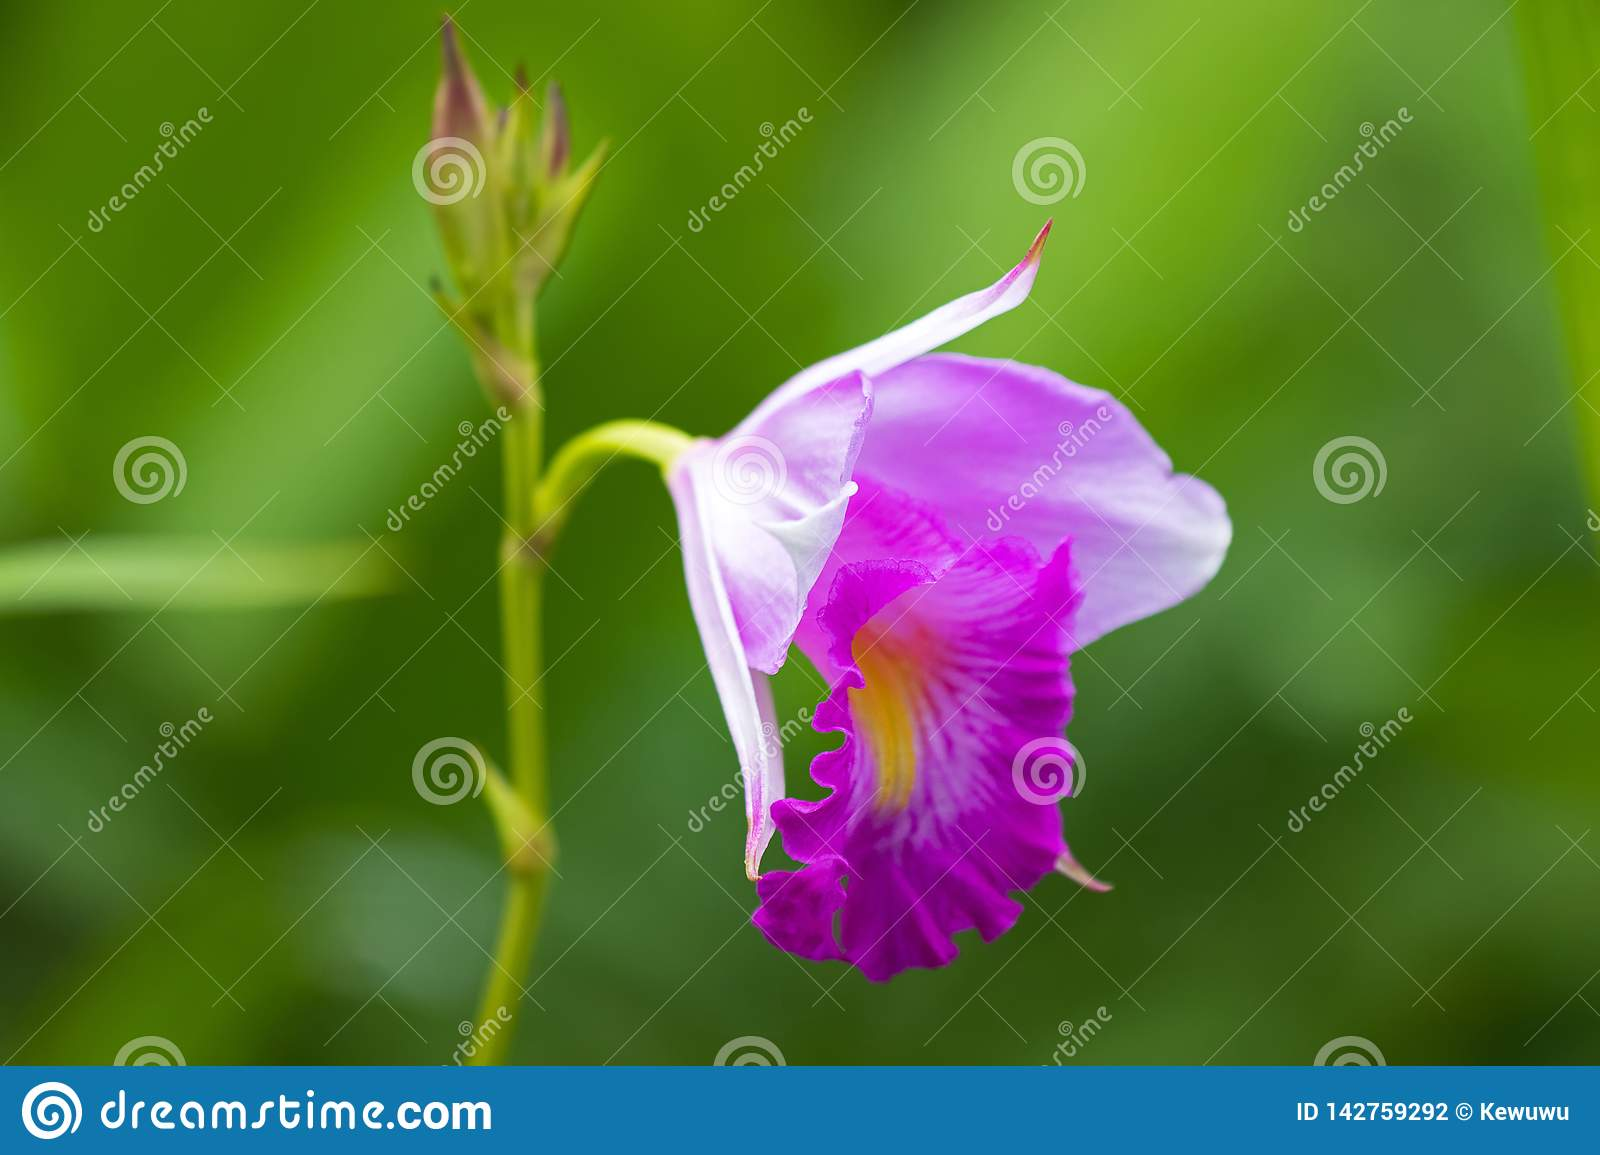 Closeup photo of bamboo orchid flower in white pink with blurred green background